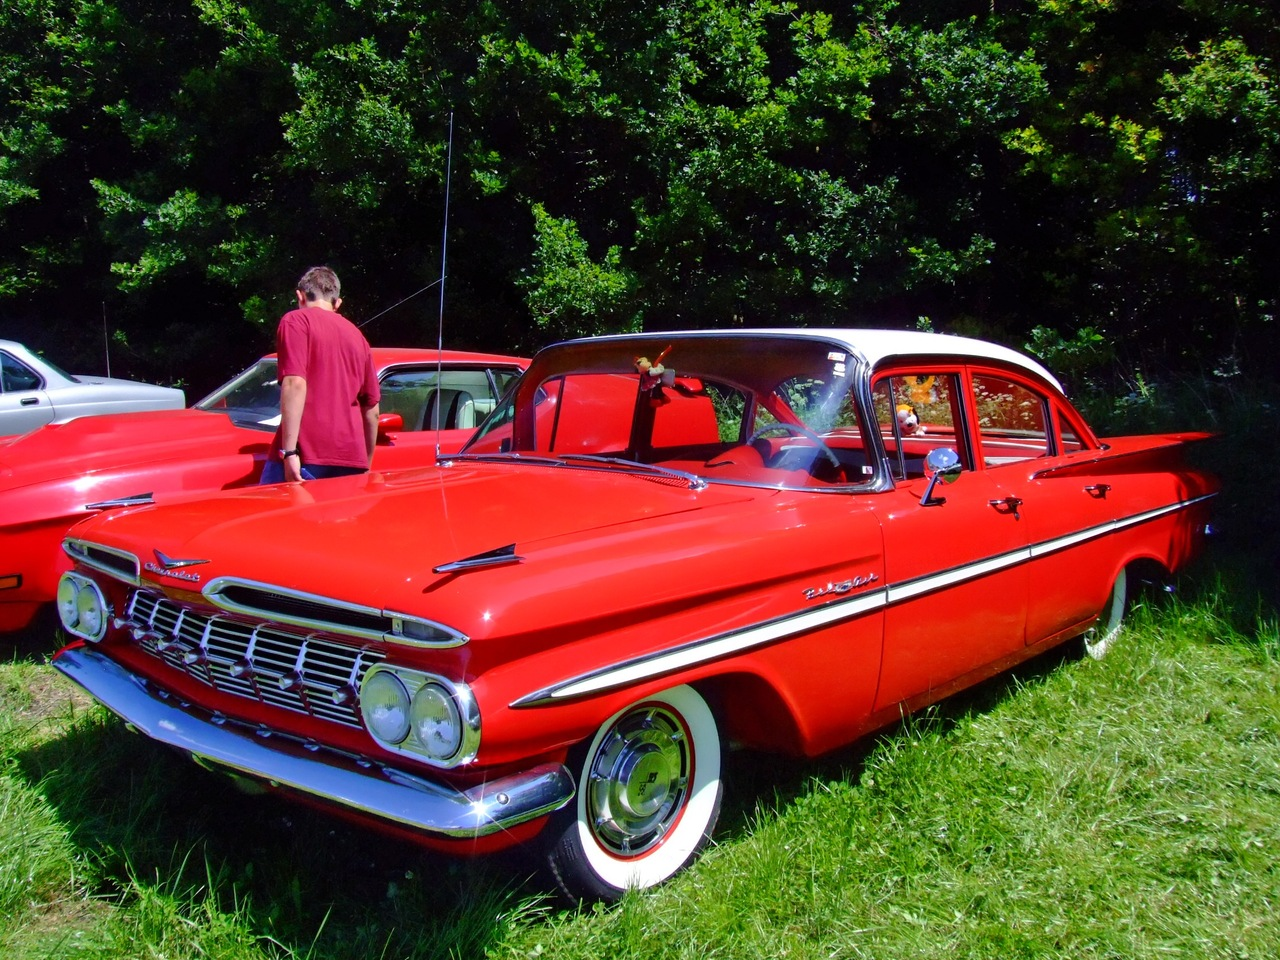 1959 Chevrolet Bel Air #1